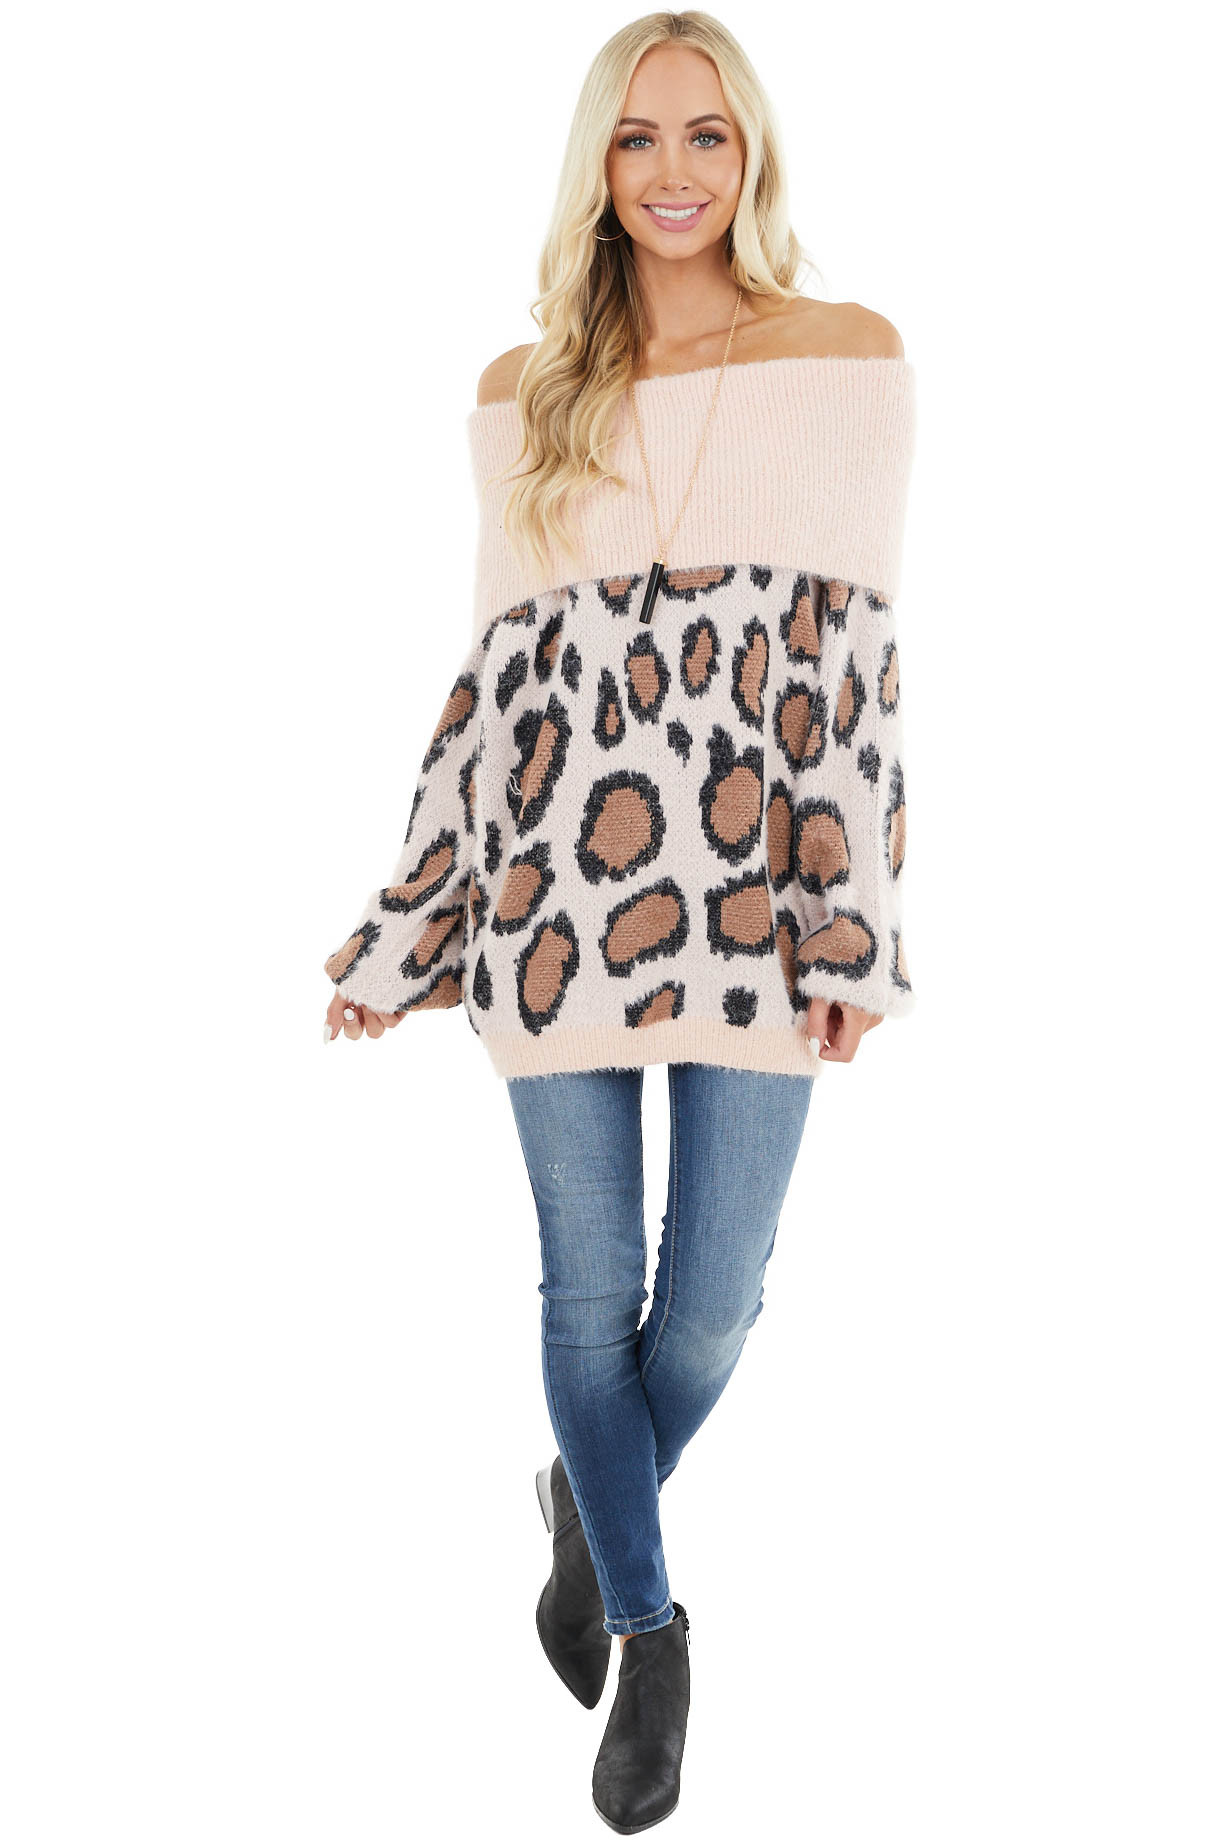 Blush Fuzzy Leopard Long Sleeve Off the Shoulder Sweater